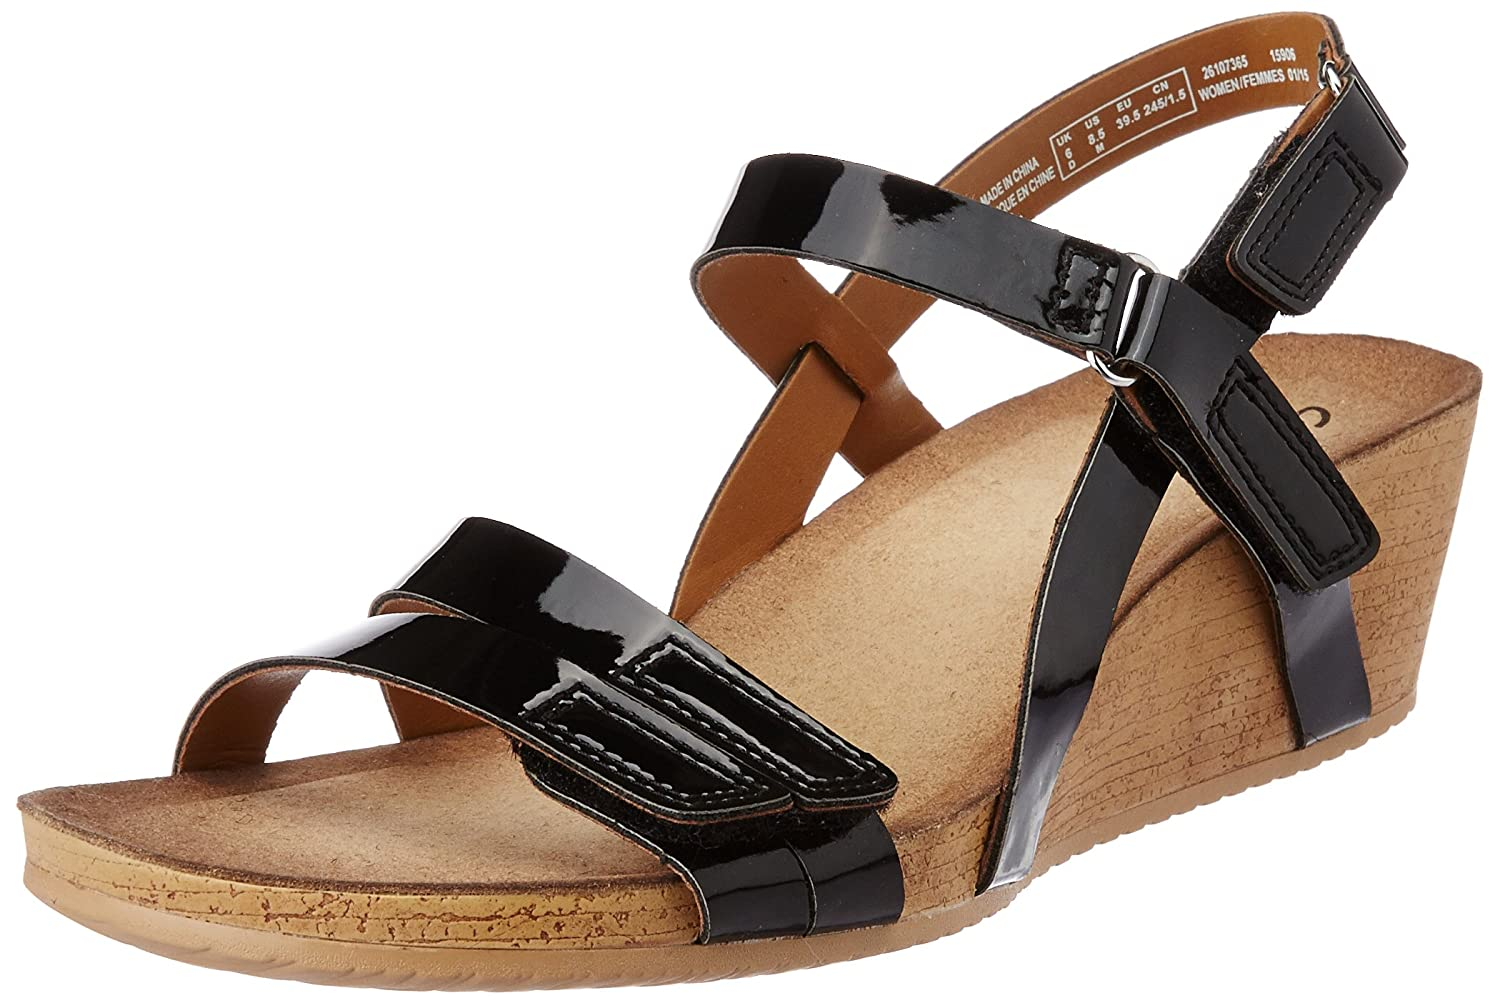 7a085ba76f7 Clarks Womens Alto Gull Black Patent Leather Casual Sandals